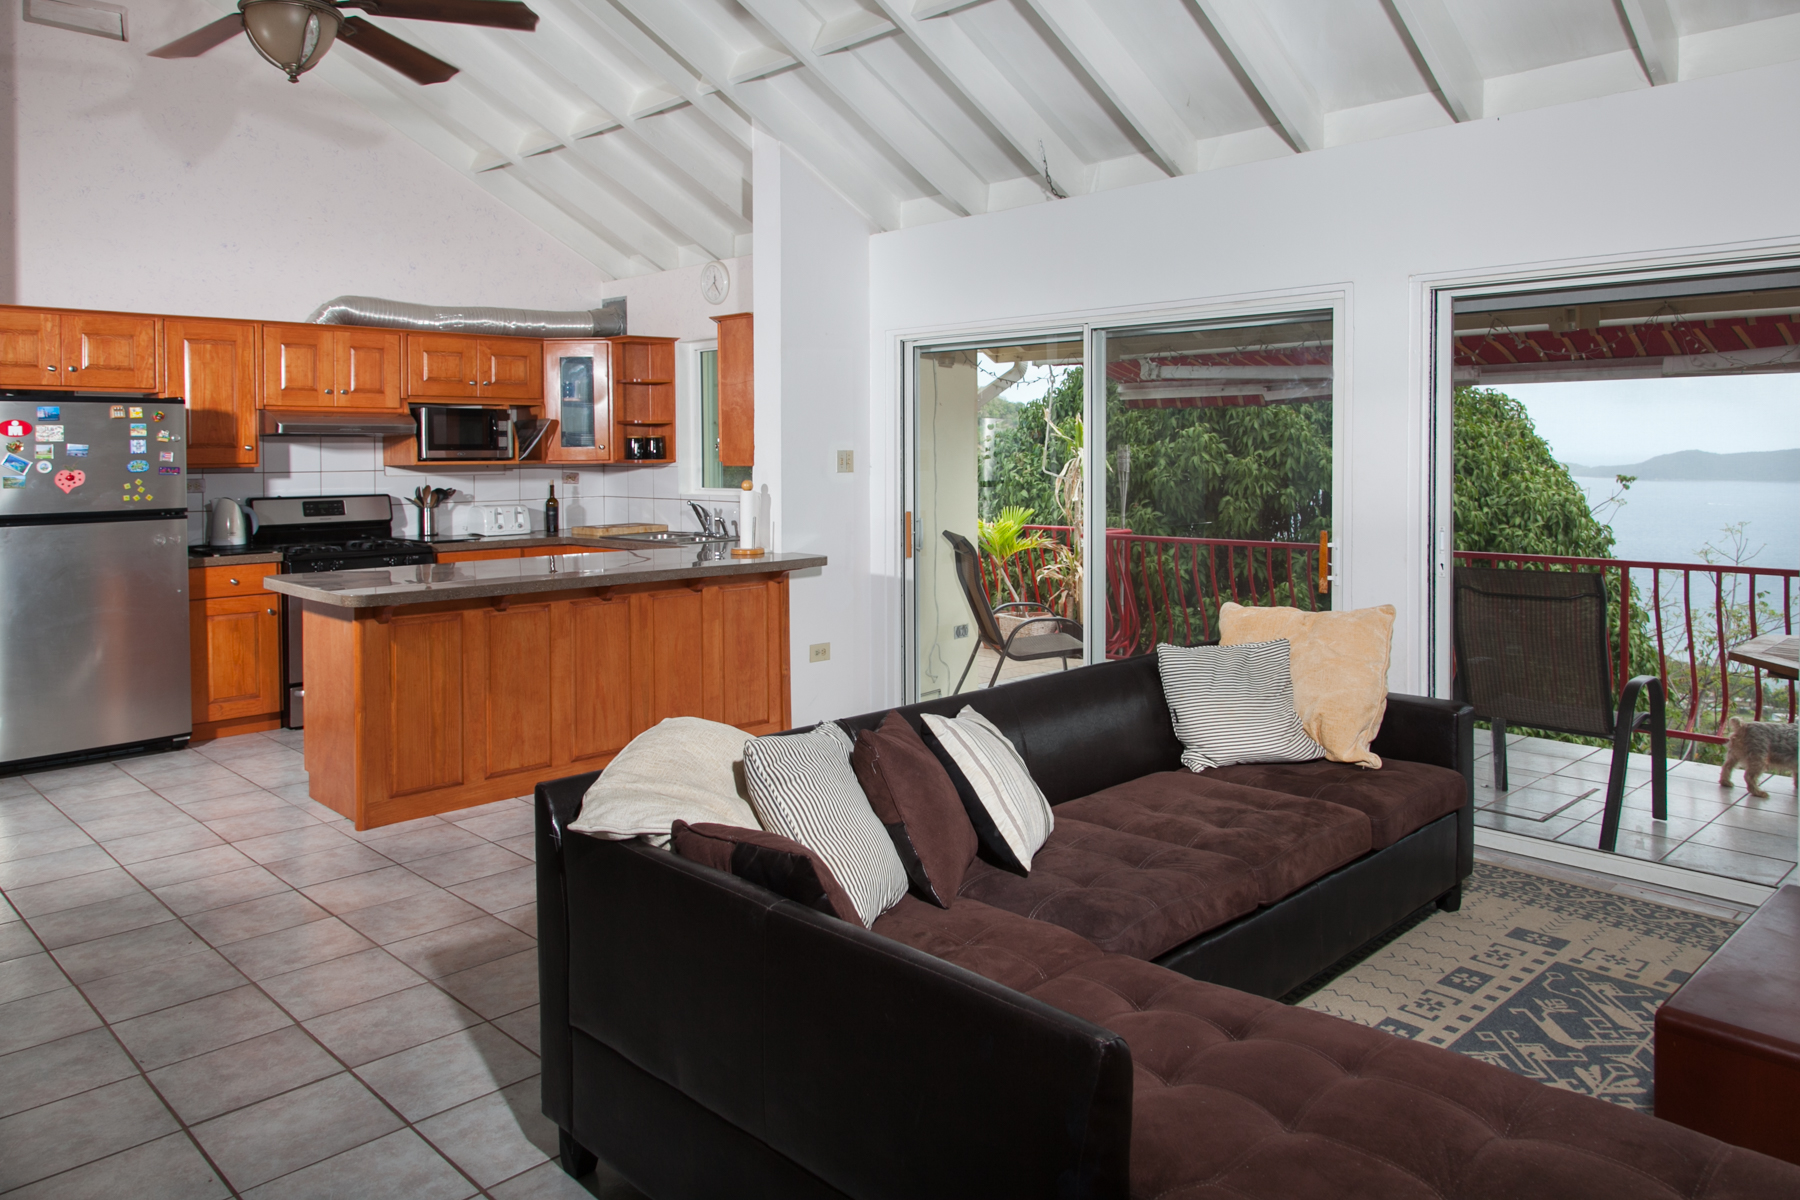 Single Family Home for Sale at Park View Romney Park, Tortola British Virgin Islands